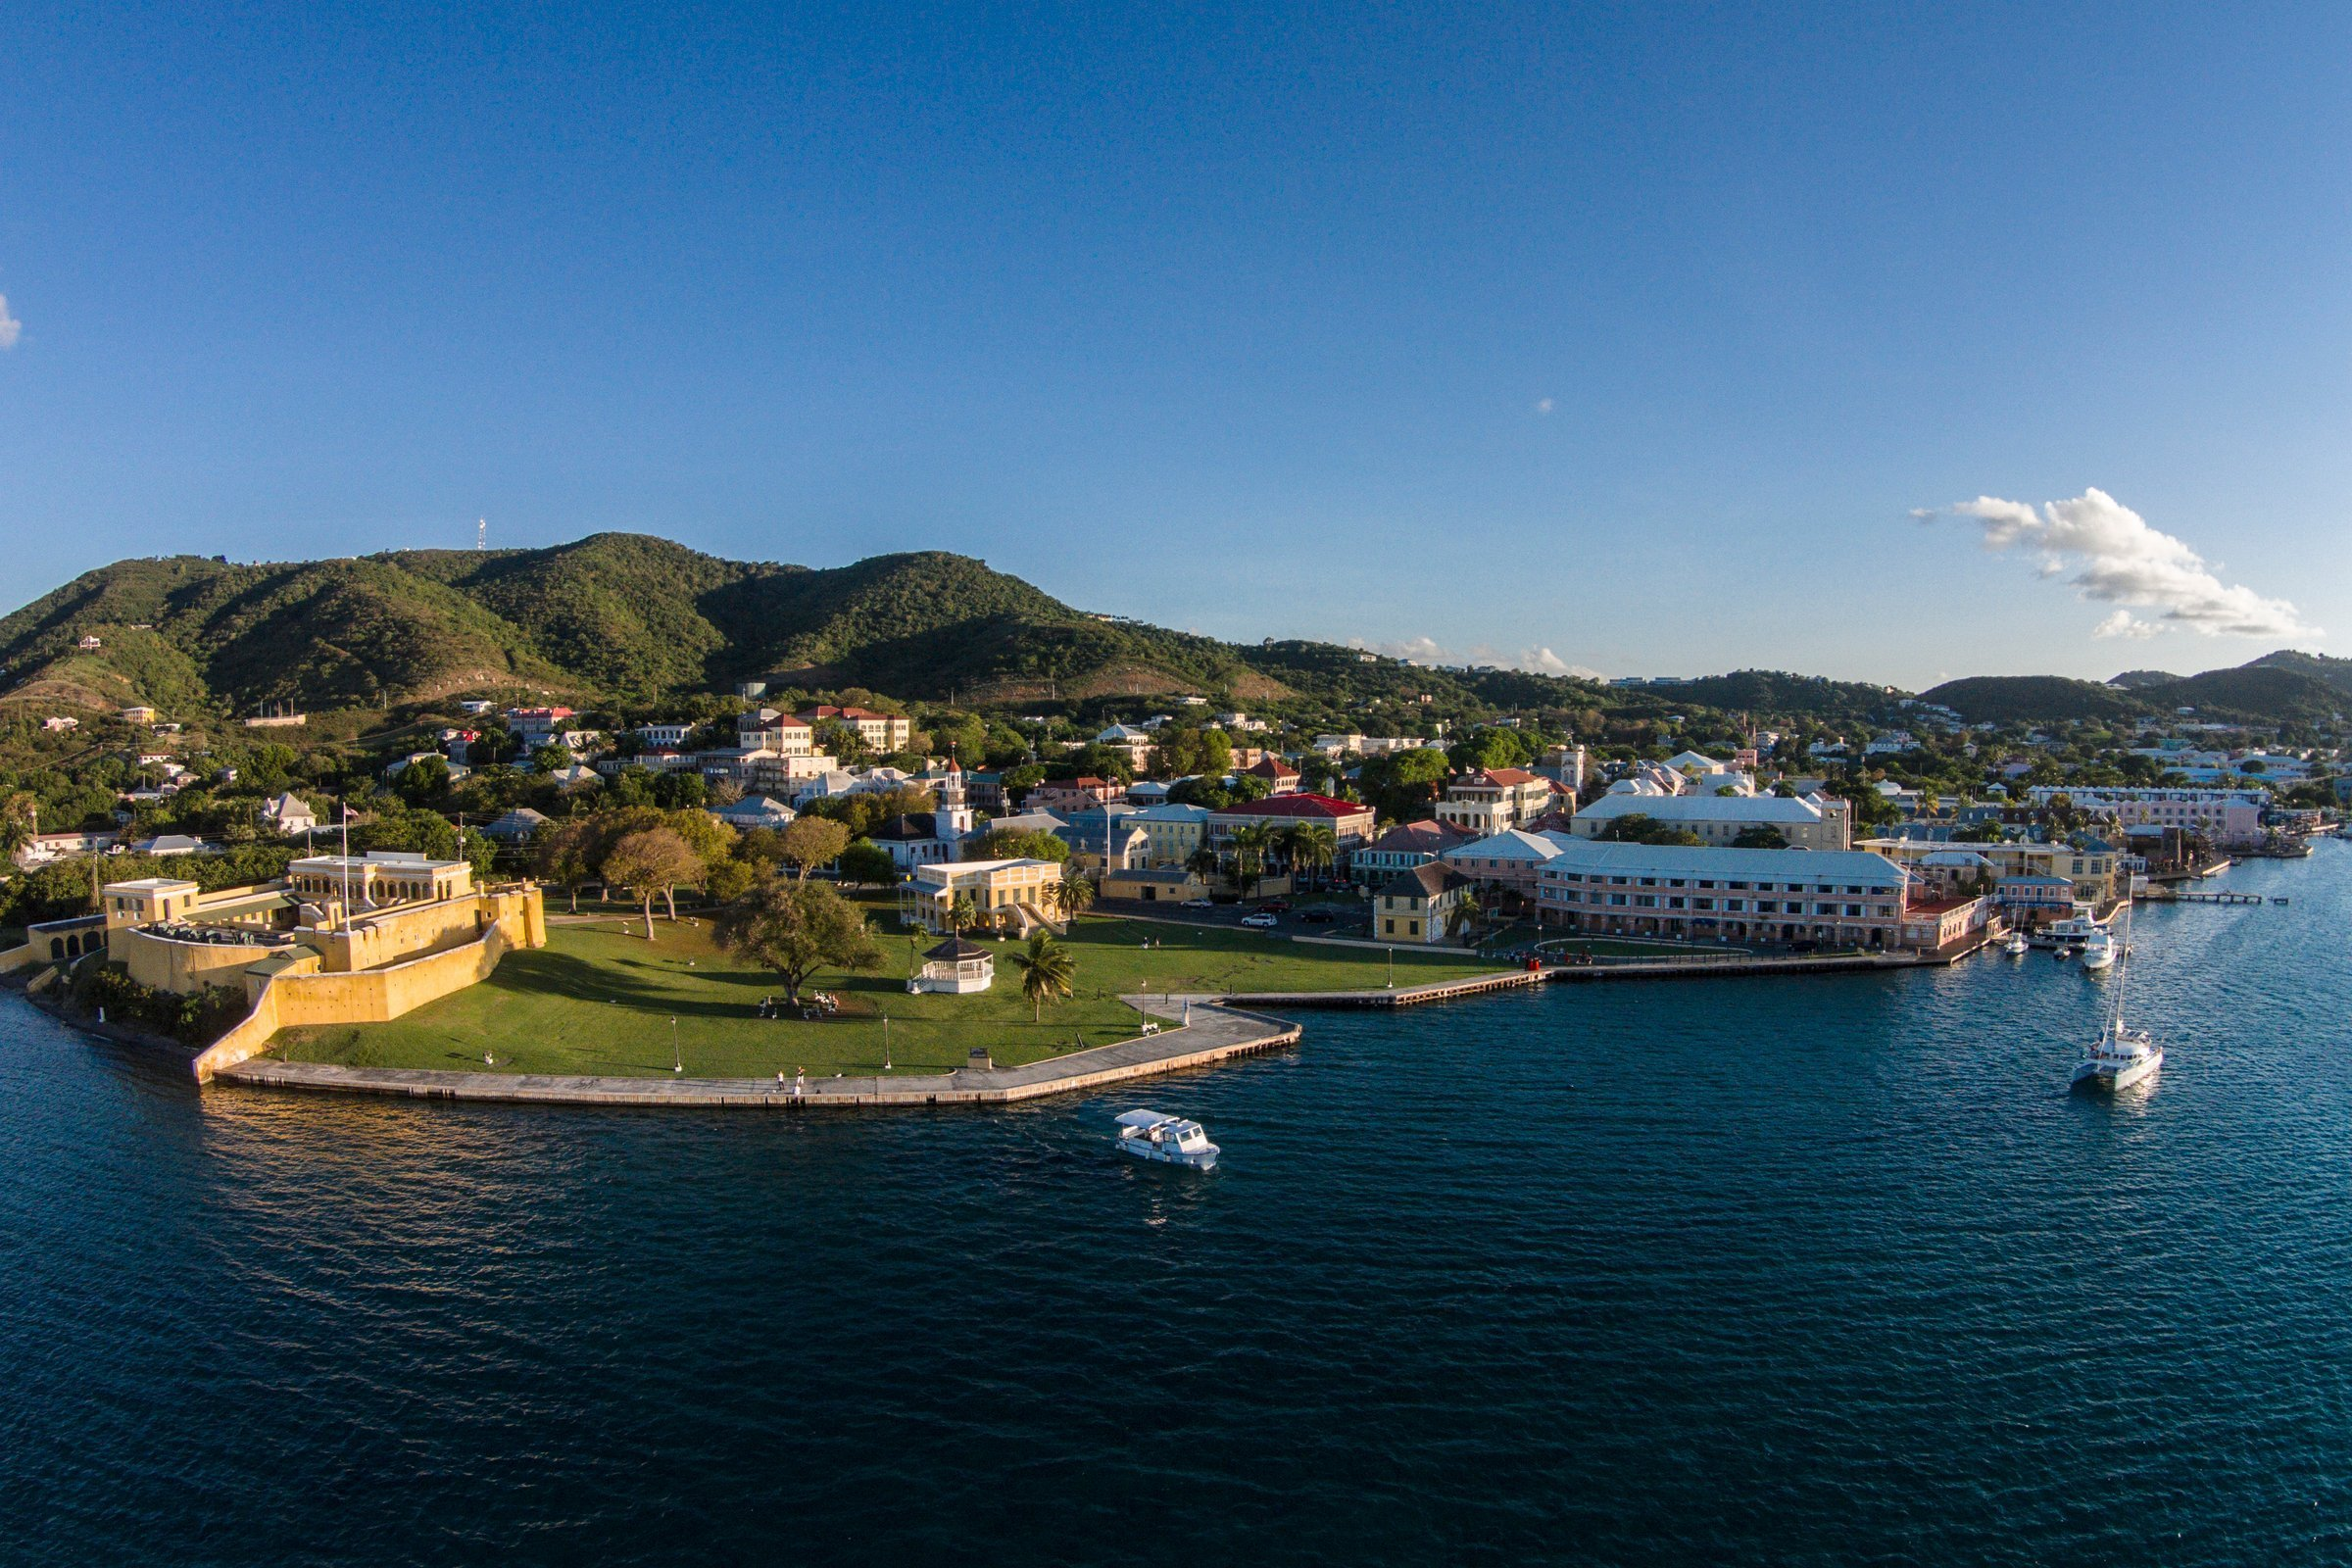 St. Croix - Christiansted Historic District